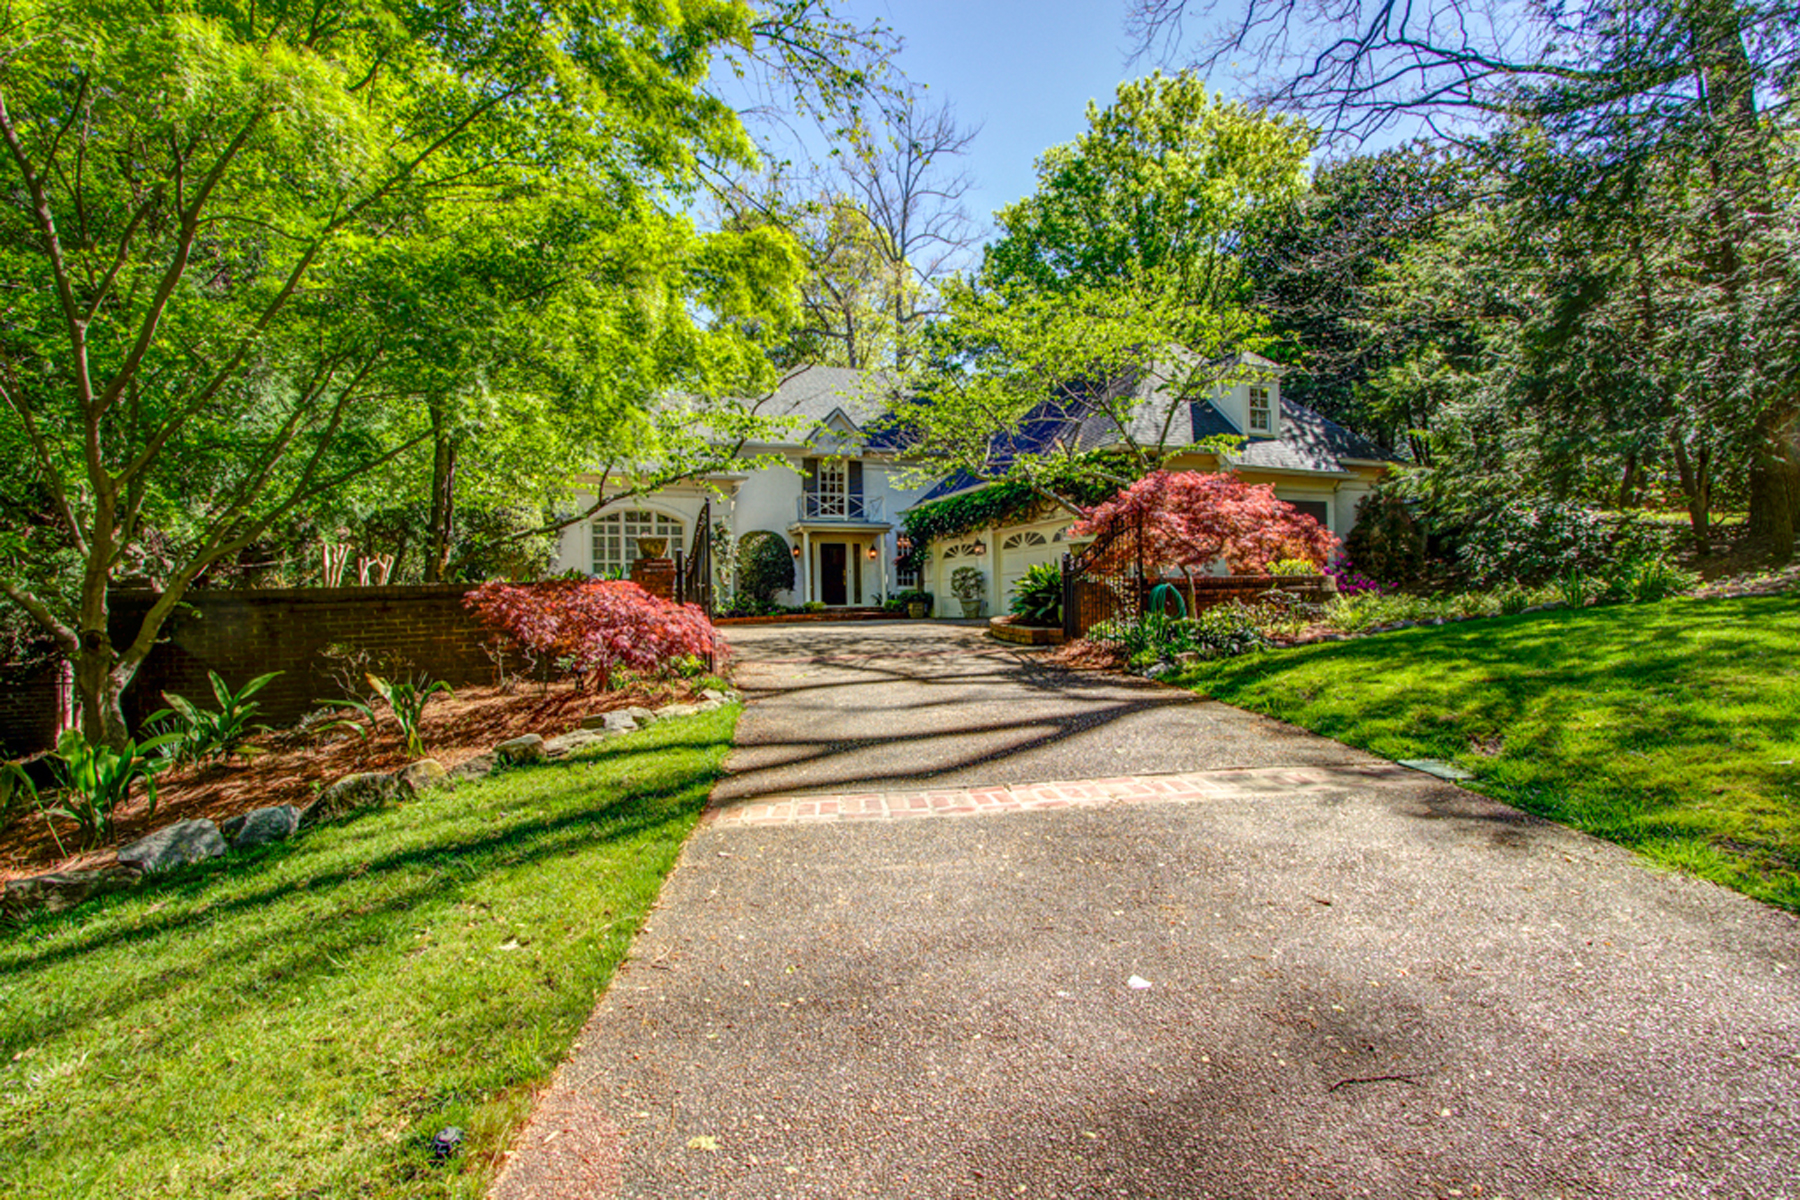 Single Family Home for Sale at European Style Home In Buckhead 105 Blackland Road NW Tuxedo Park, Atlanta, Georgia, 30342 United States